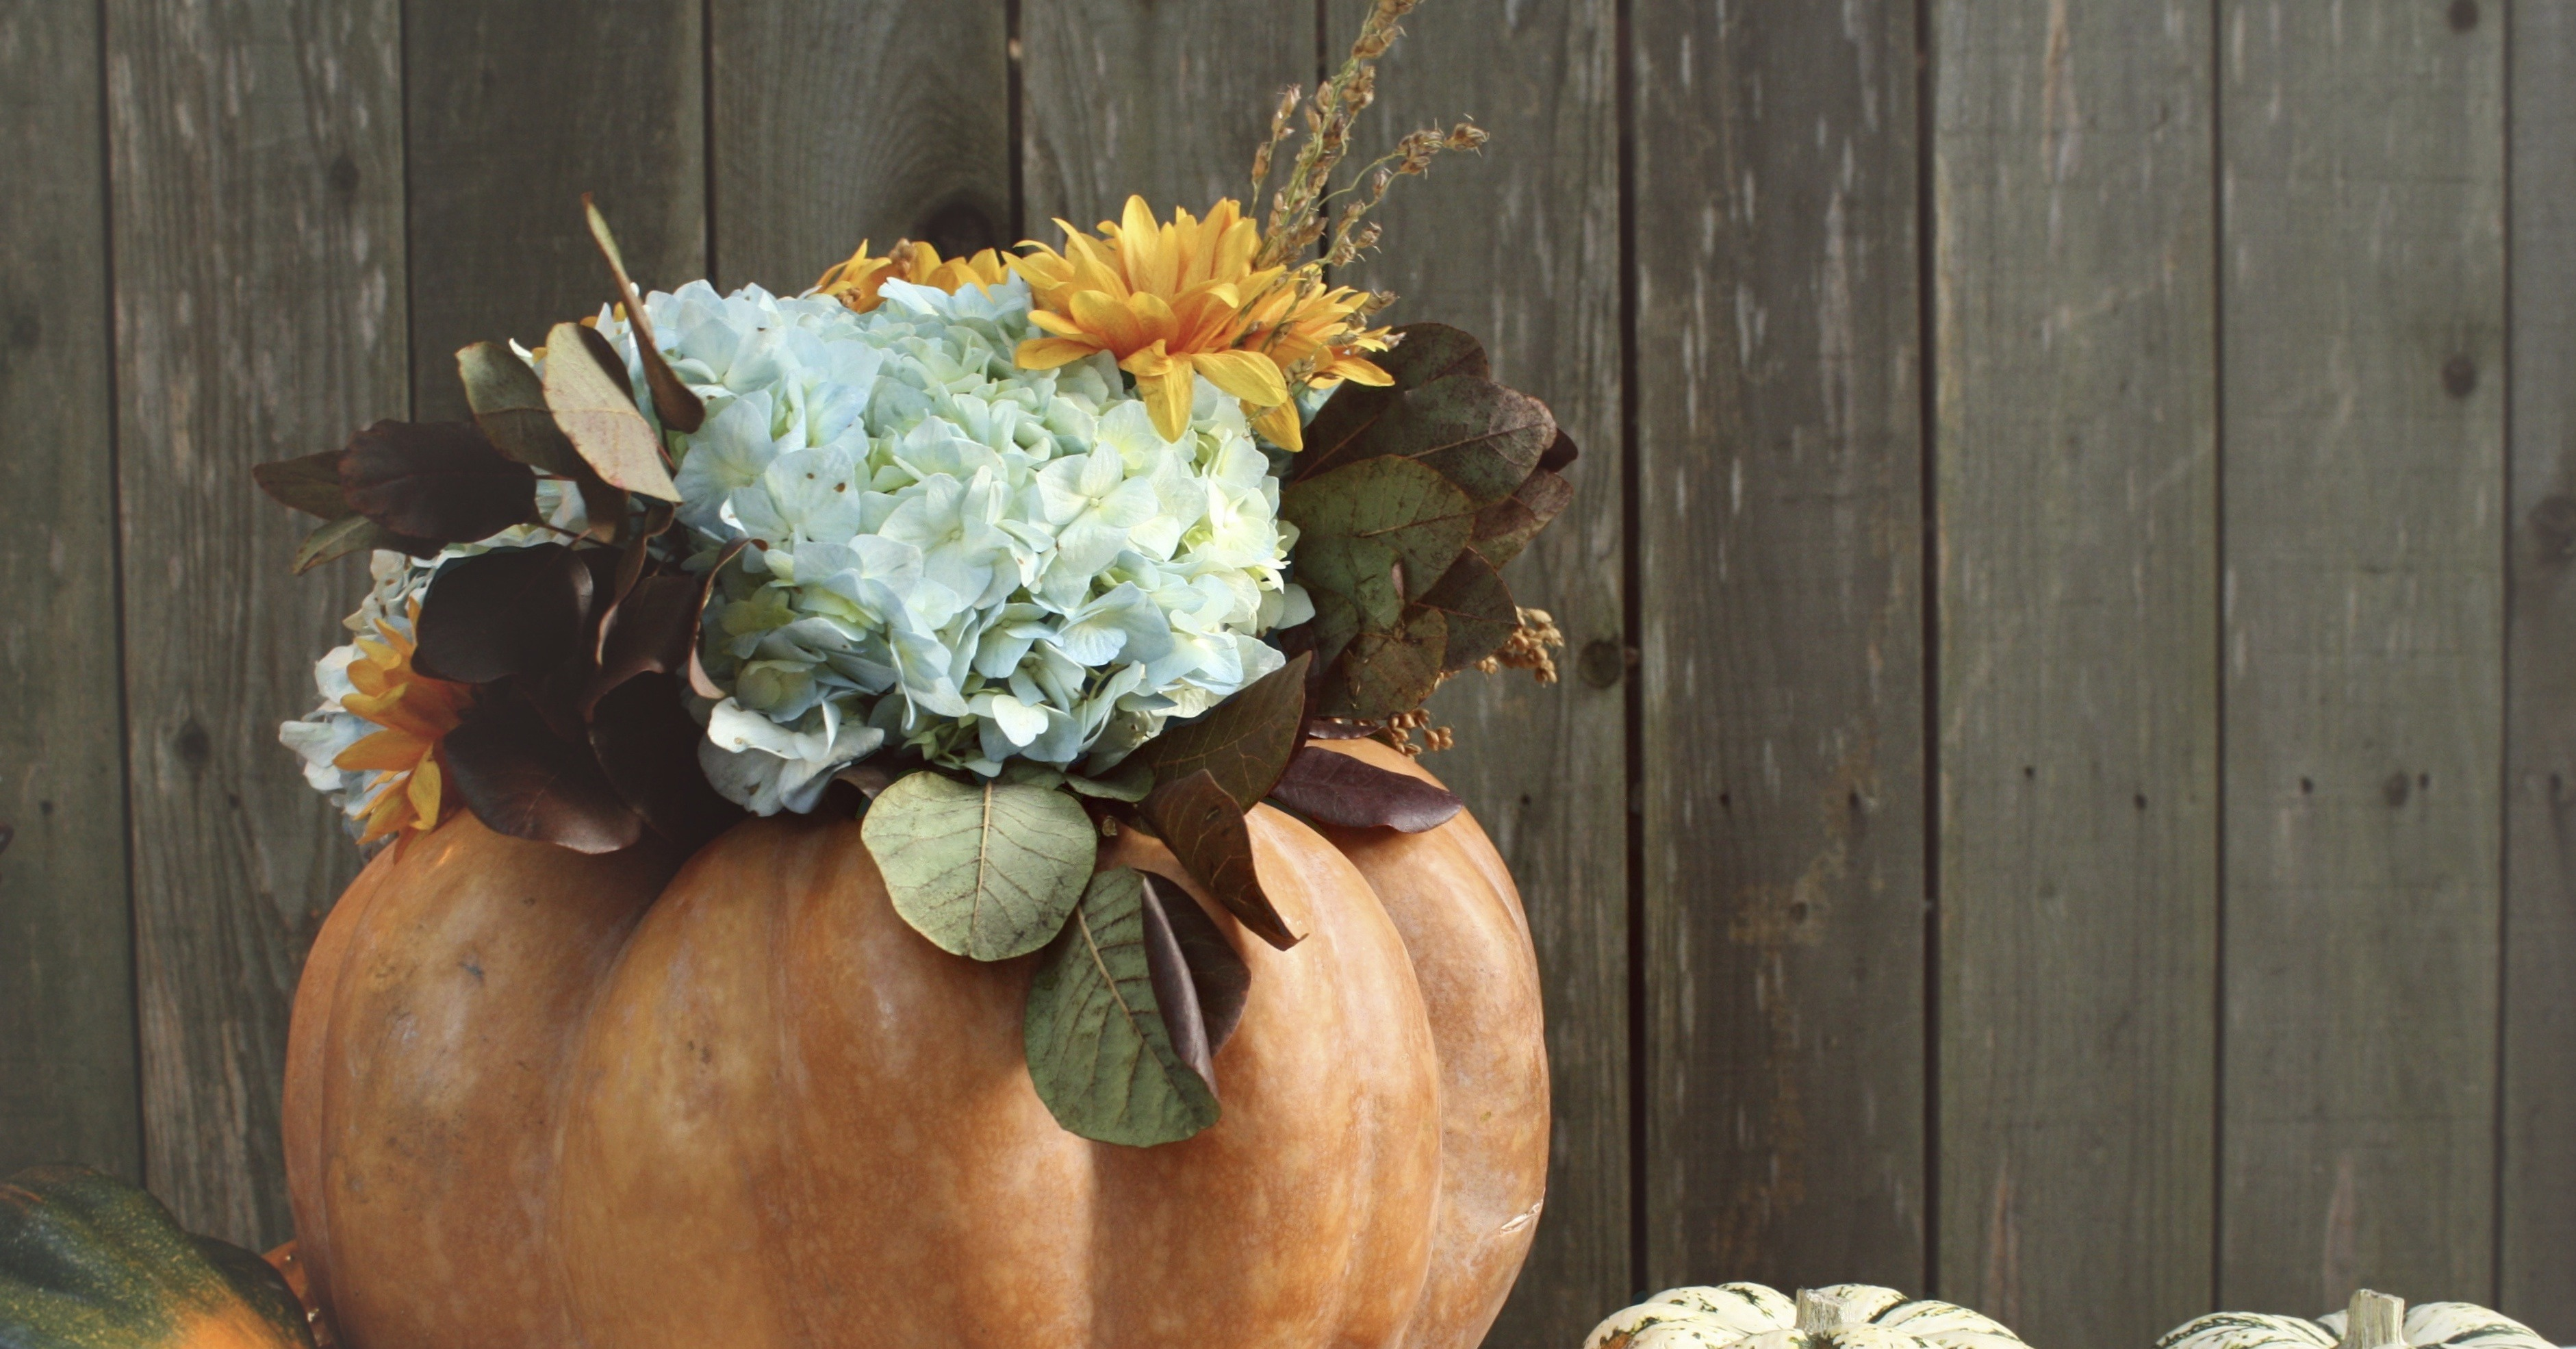 The centerpiece pumpkin vase ultimate guide to your